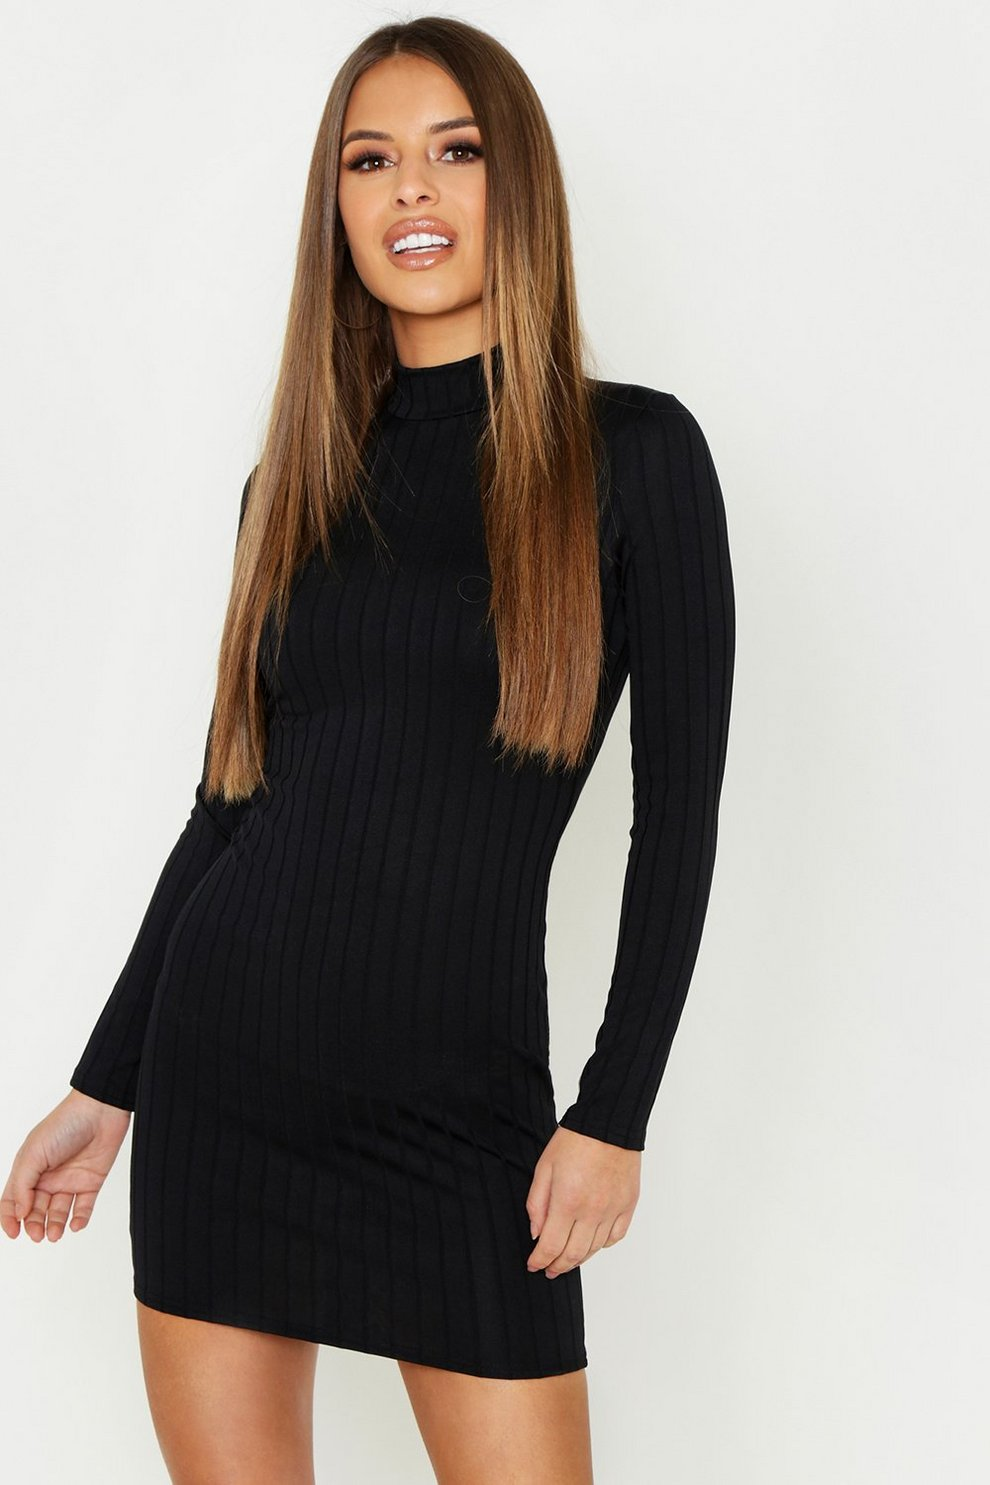 f7836eb02 Womens Black Petite Ribbed High Neck Bodycon Dress. Hover to zoom